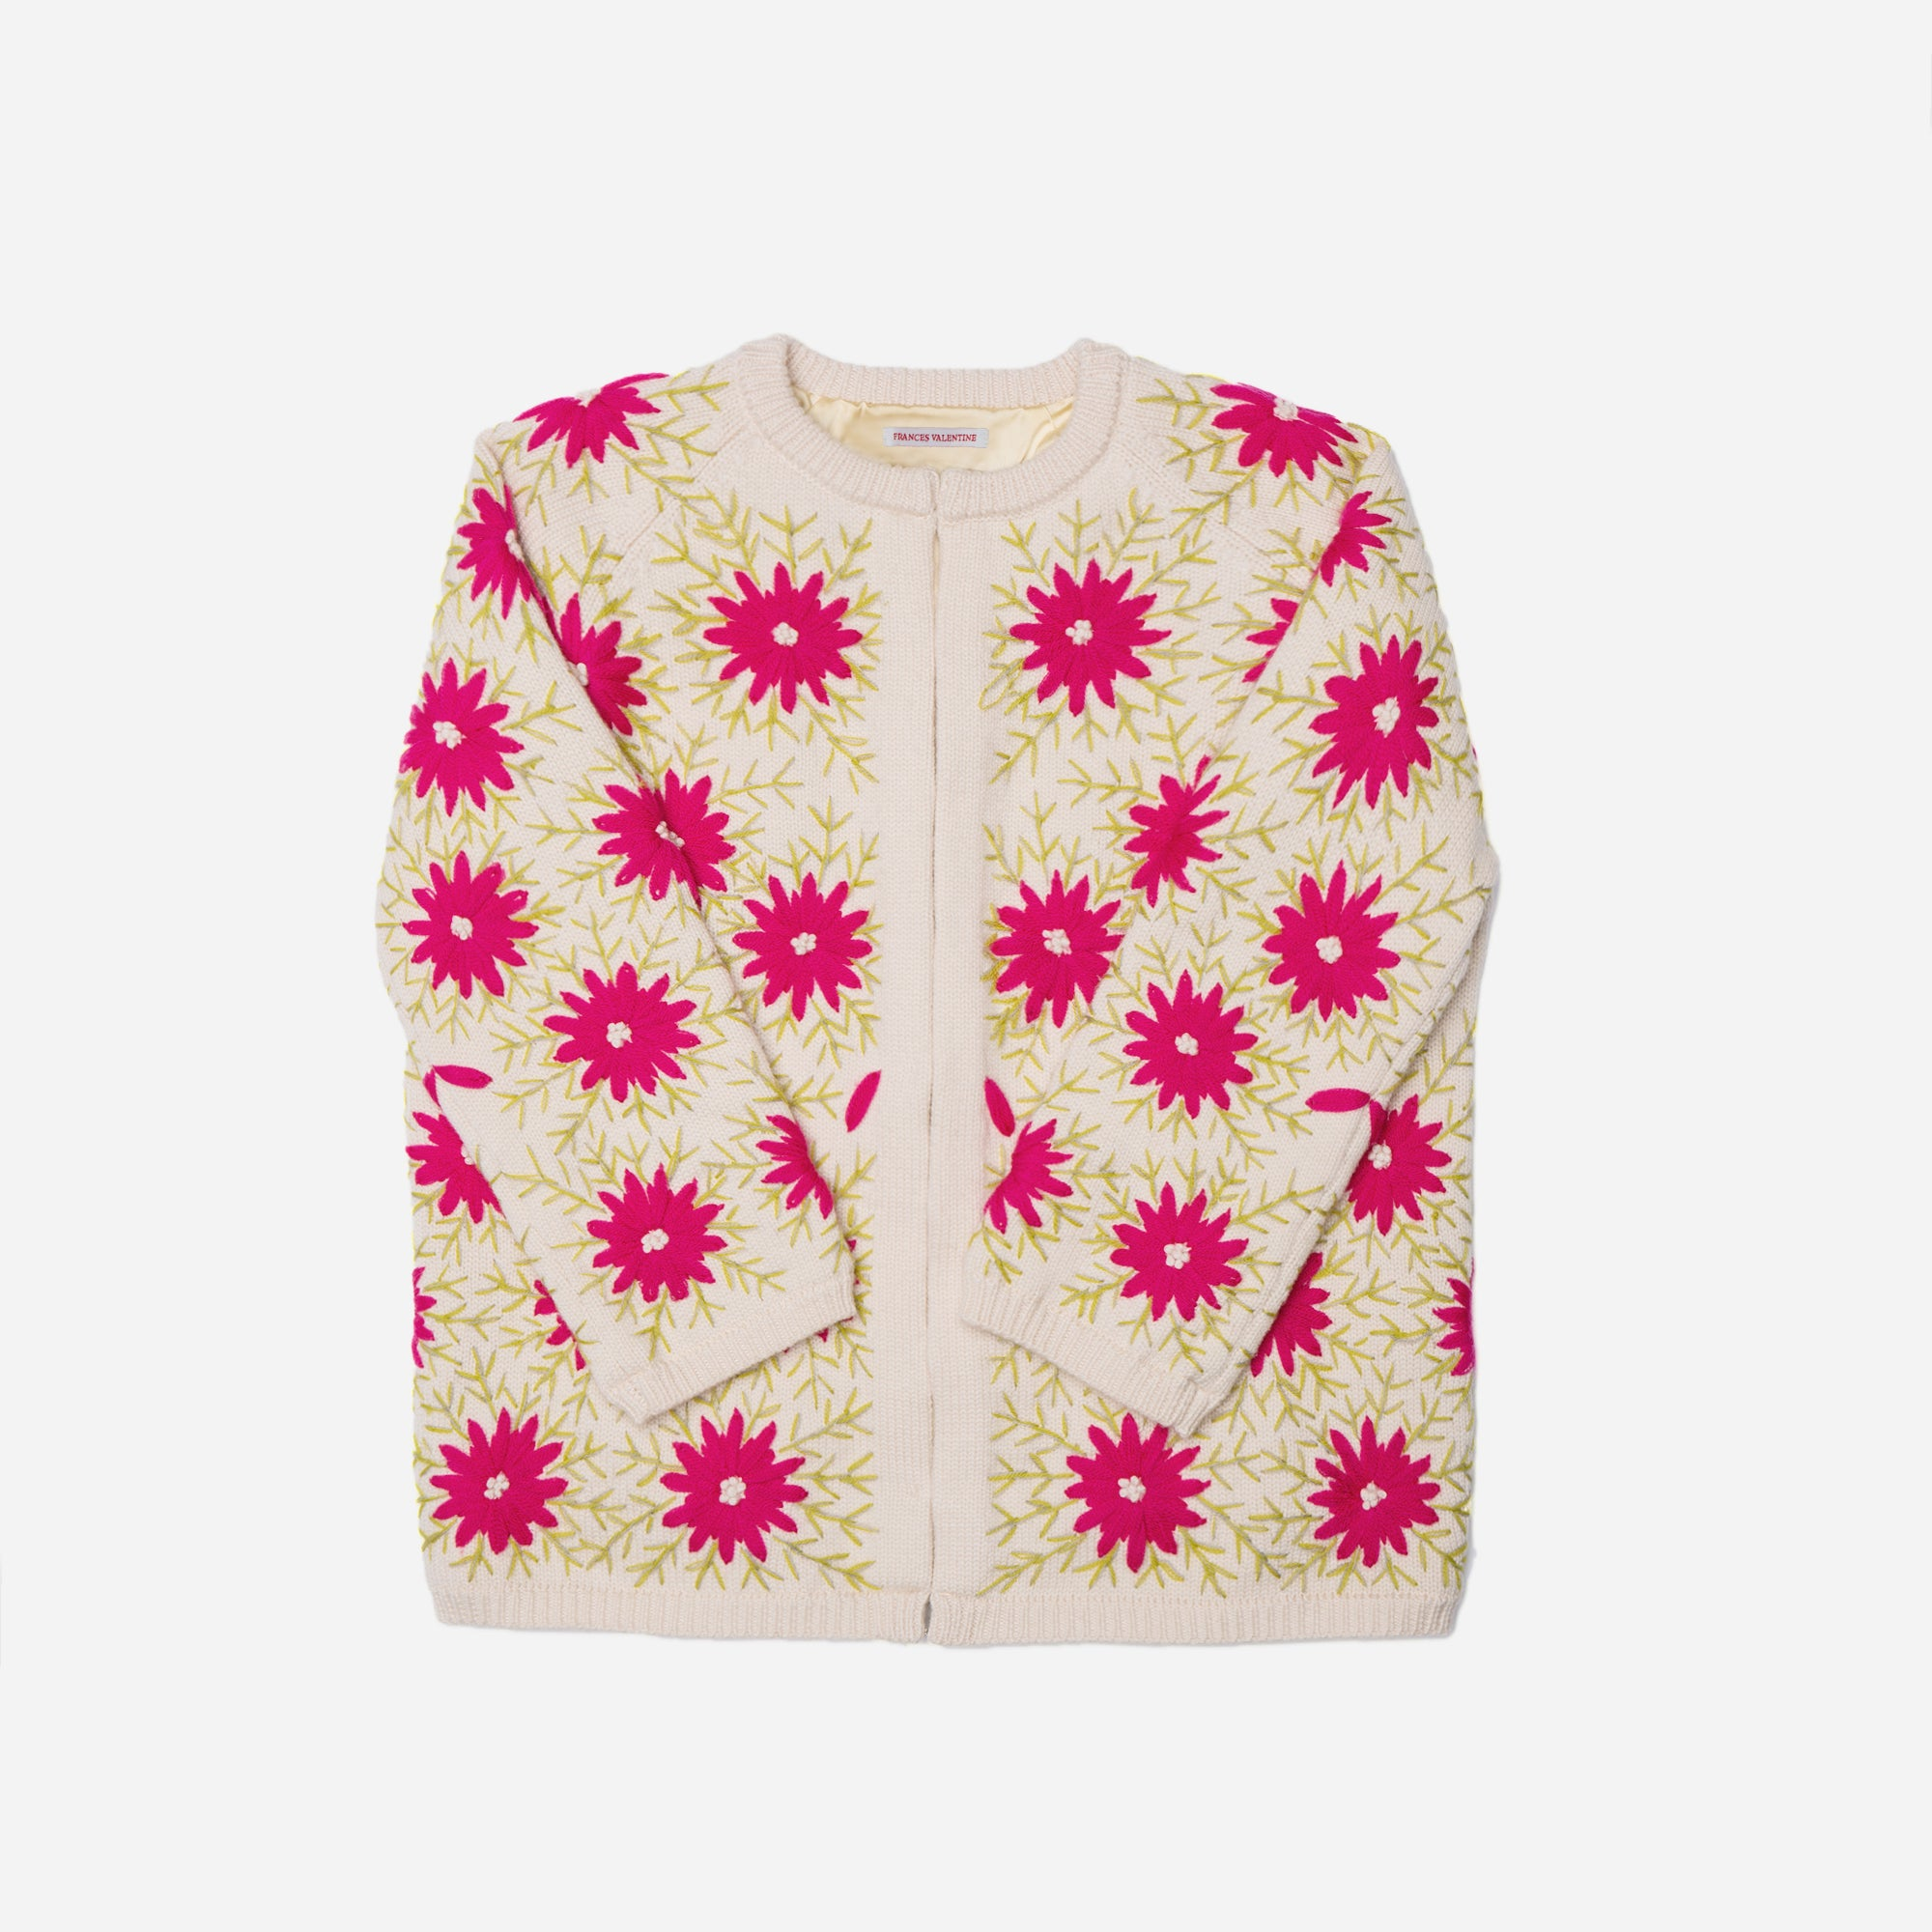 Katy's Flower Cardi Coat Pink